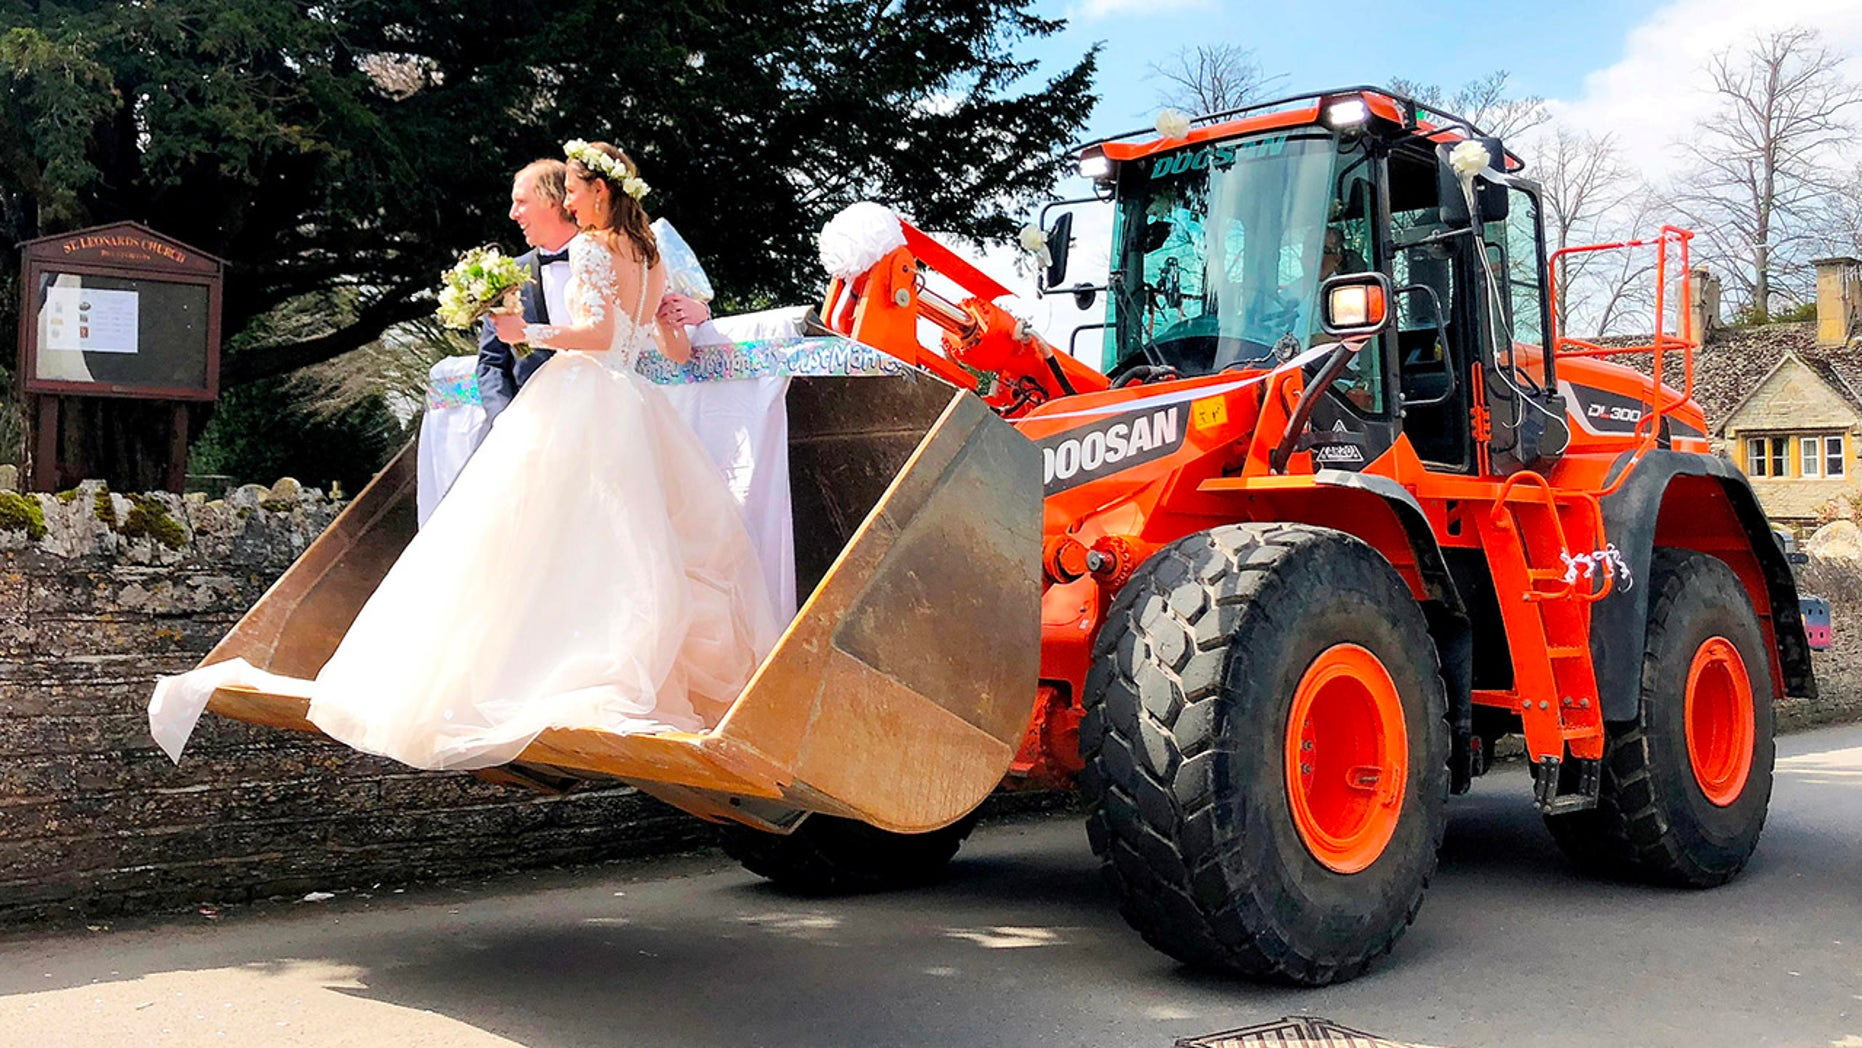 A JCB driver and his new bride stunned guests when they turned up to their wedding reception – in the bucket of a giant DIGGER.  See NTI story NTIWED.  Jason Smith, 29, and his bride Iona, 28, ditched the traditional horse-drawn carriage and opted instead for an 18 ton earth mover.  They arrived at their wedding at Bretforton Church, Evesham, Worcs., on Saturday (5/4) in the digger in front of friends and family.  Jason's colleagues at local firm Budget Skips organised the transport as a surprise for him and new wife Iona.